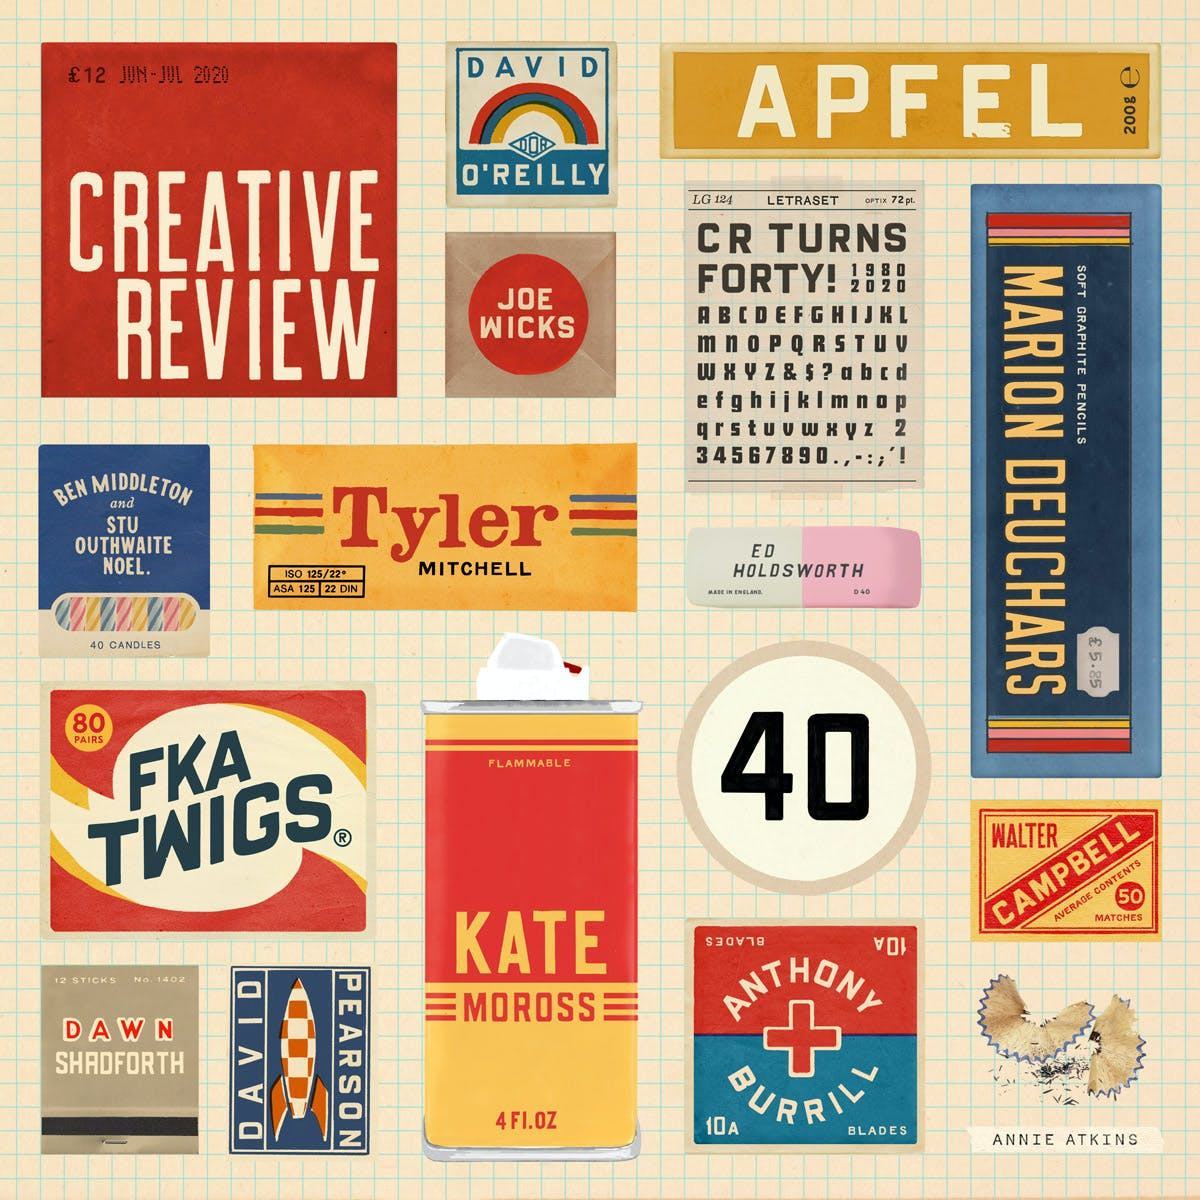 creative review 40years cover atkins